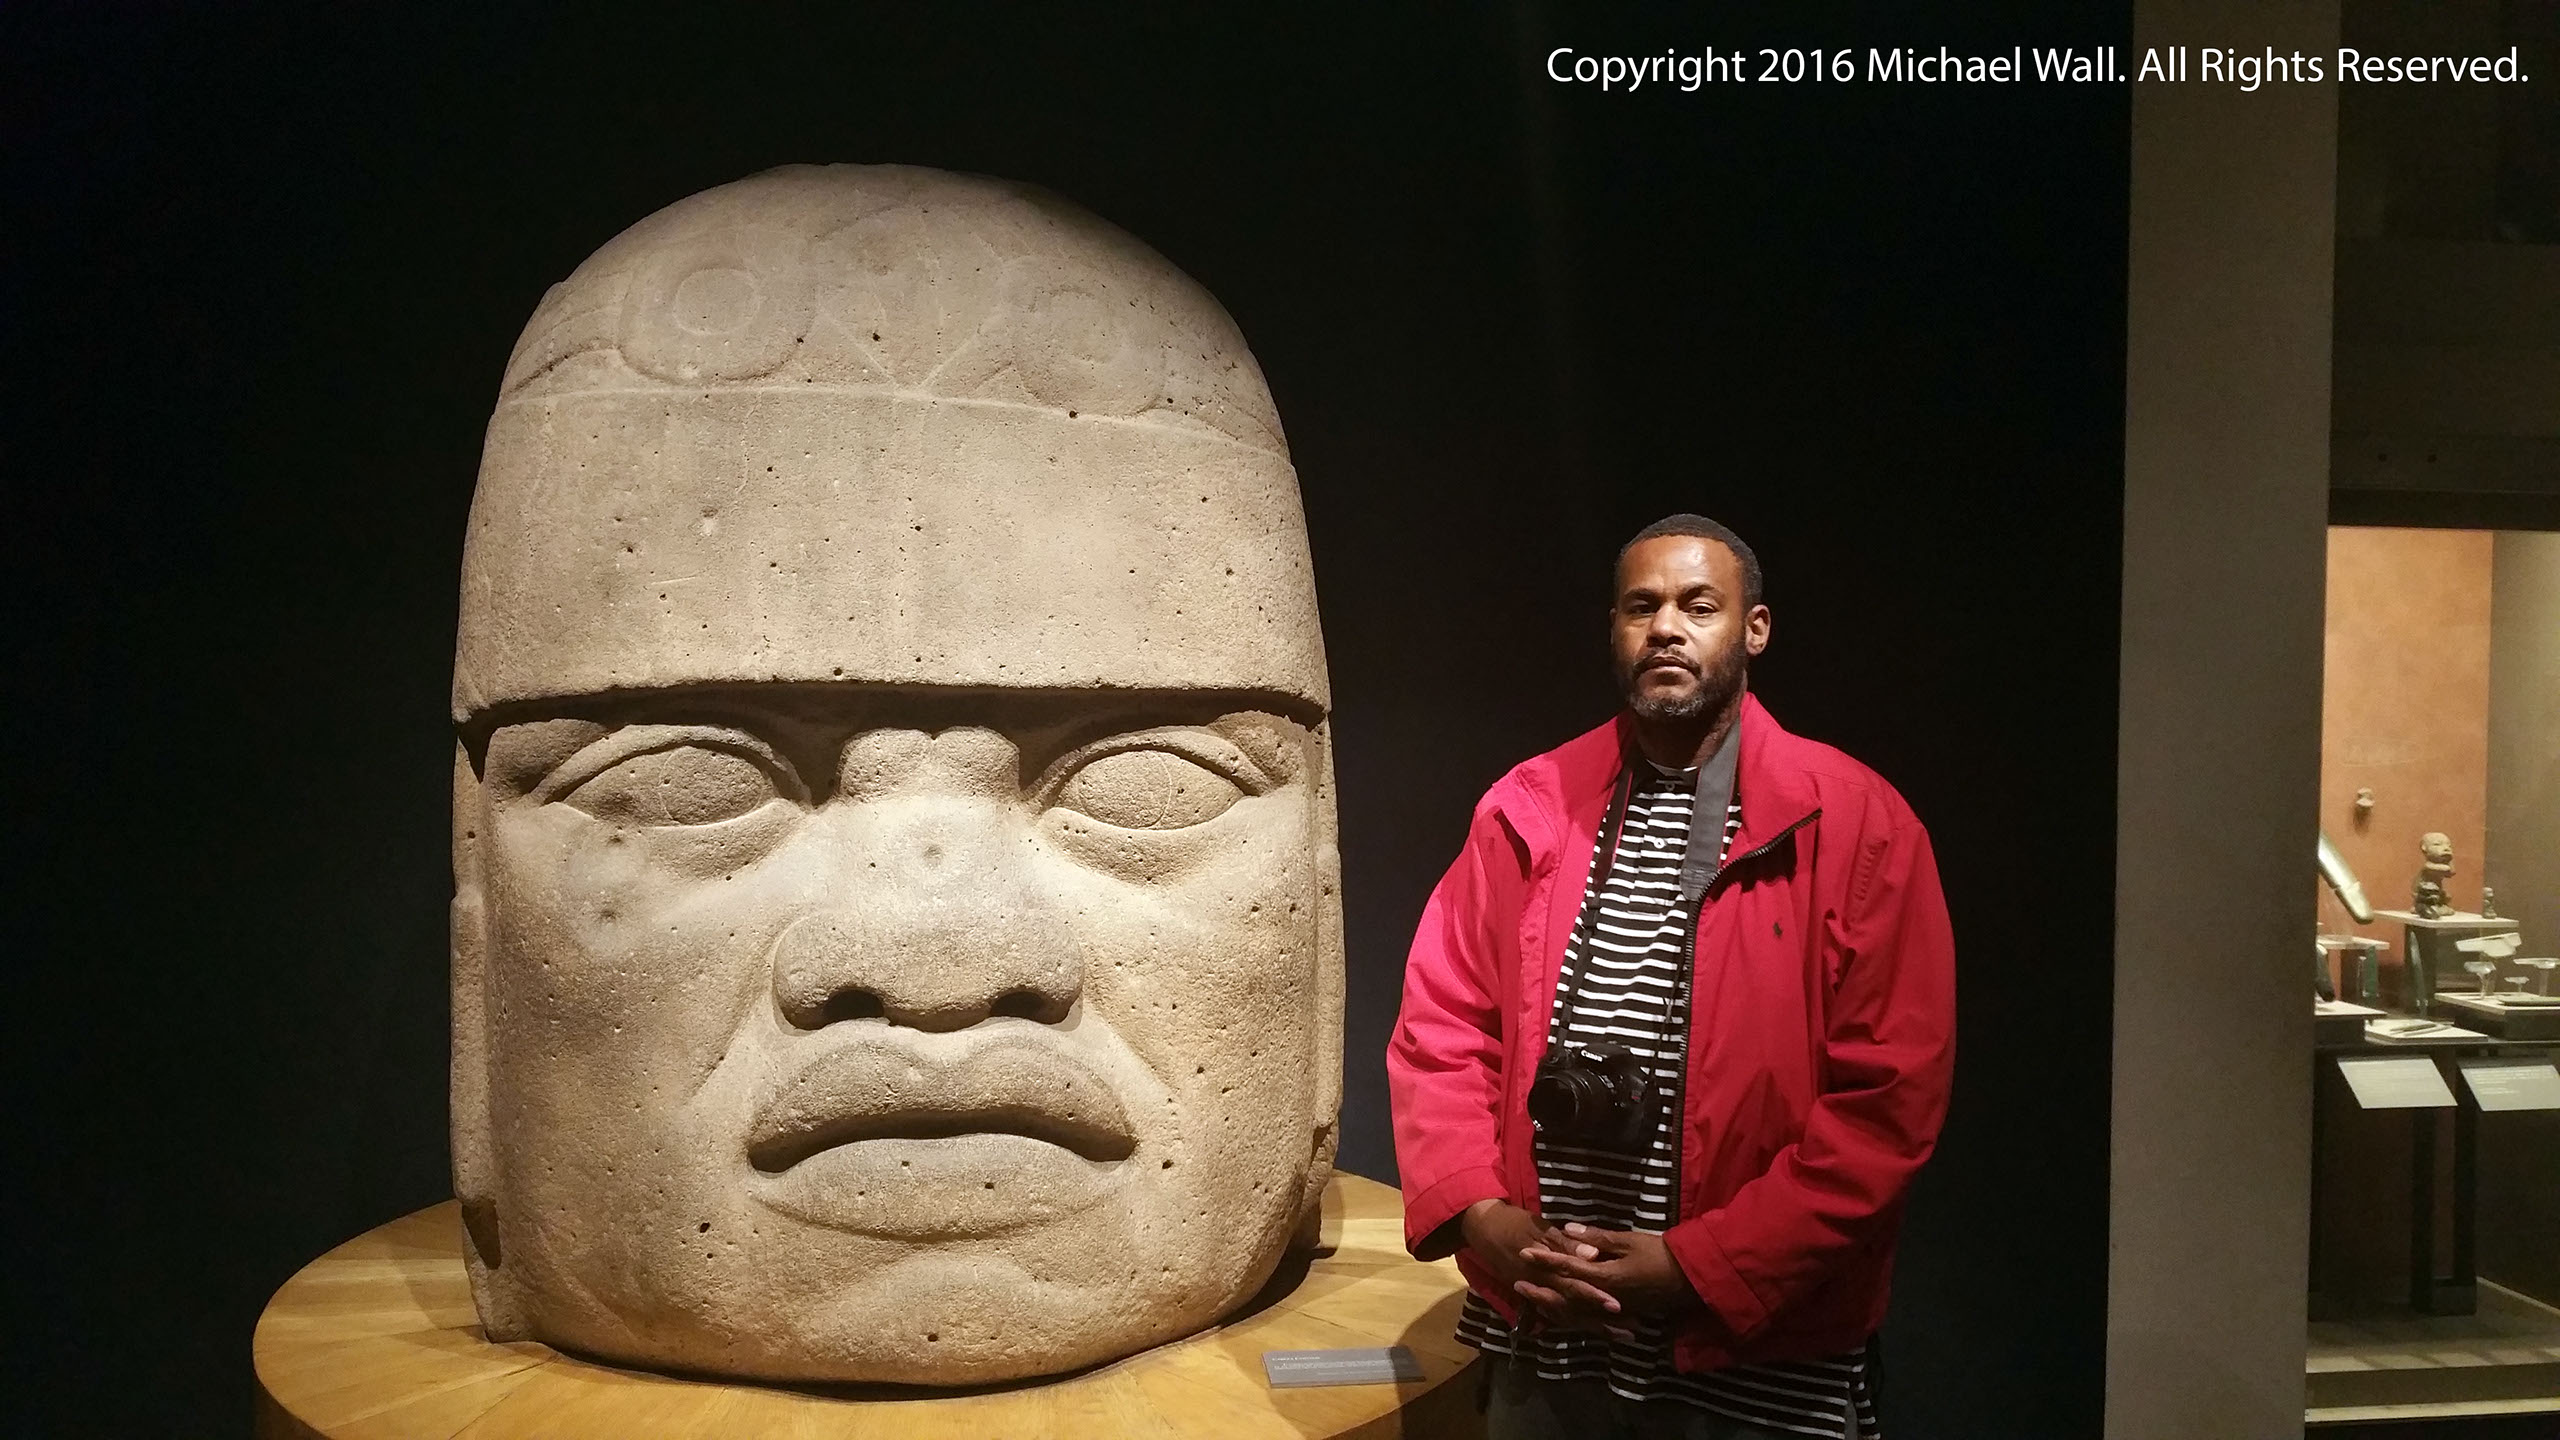 michael wall and olmec head